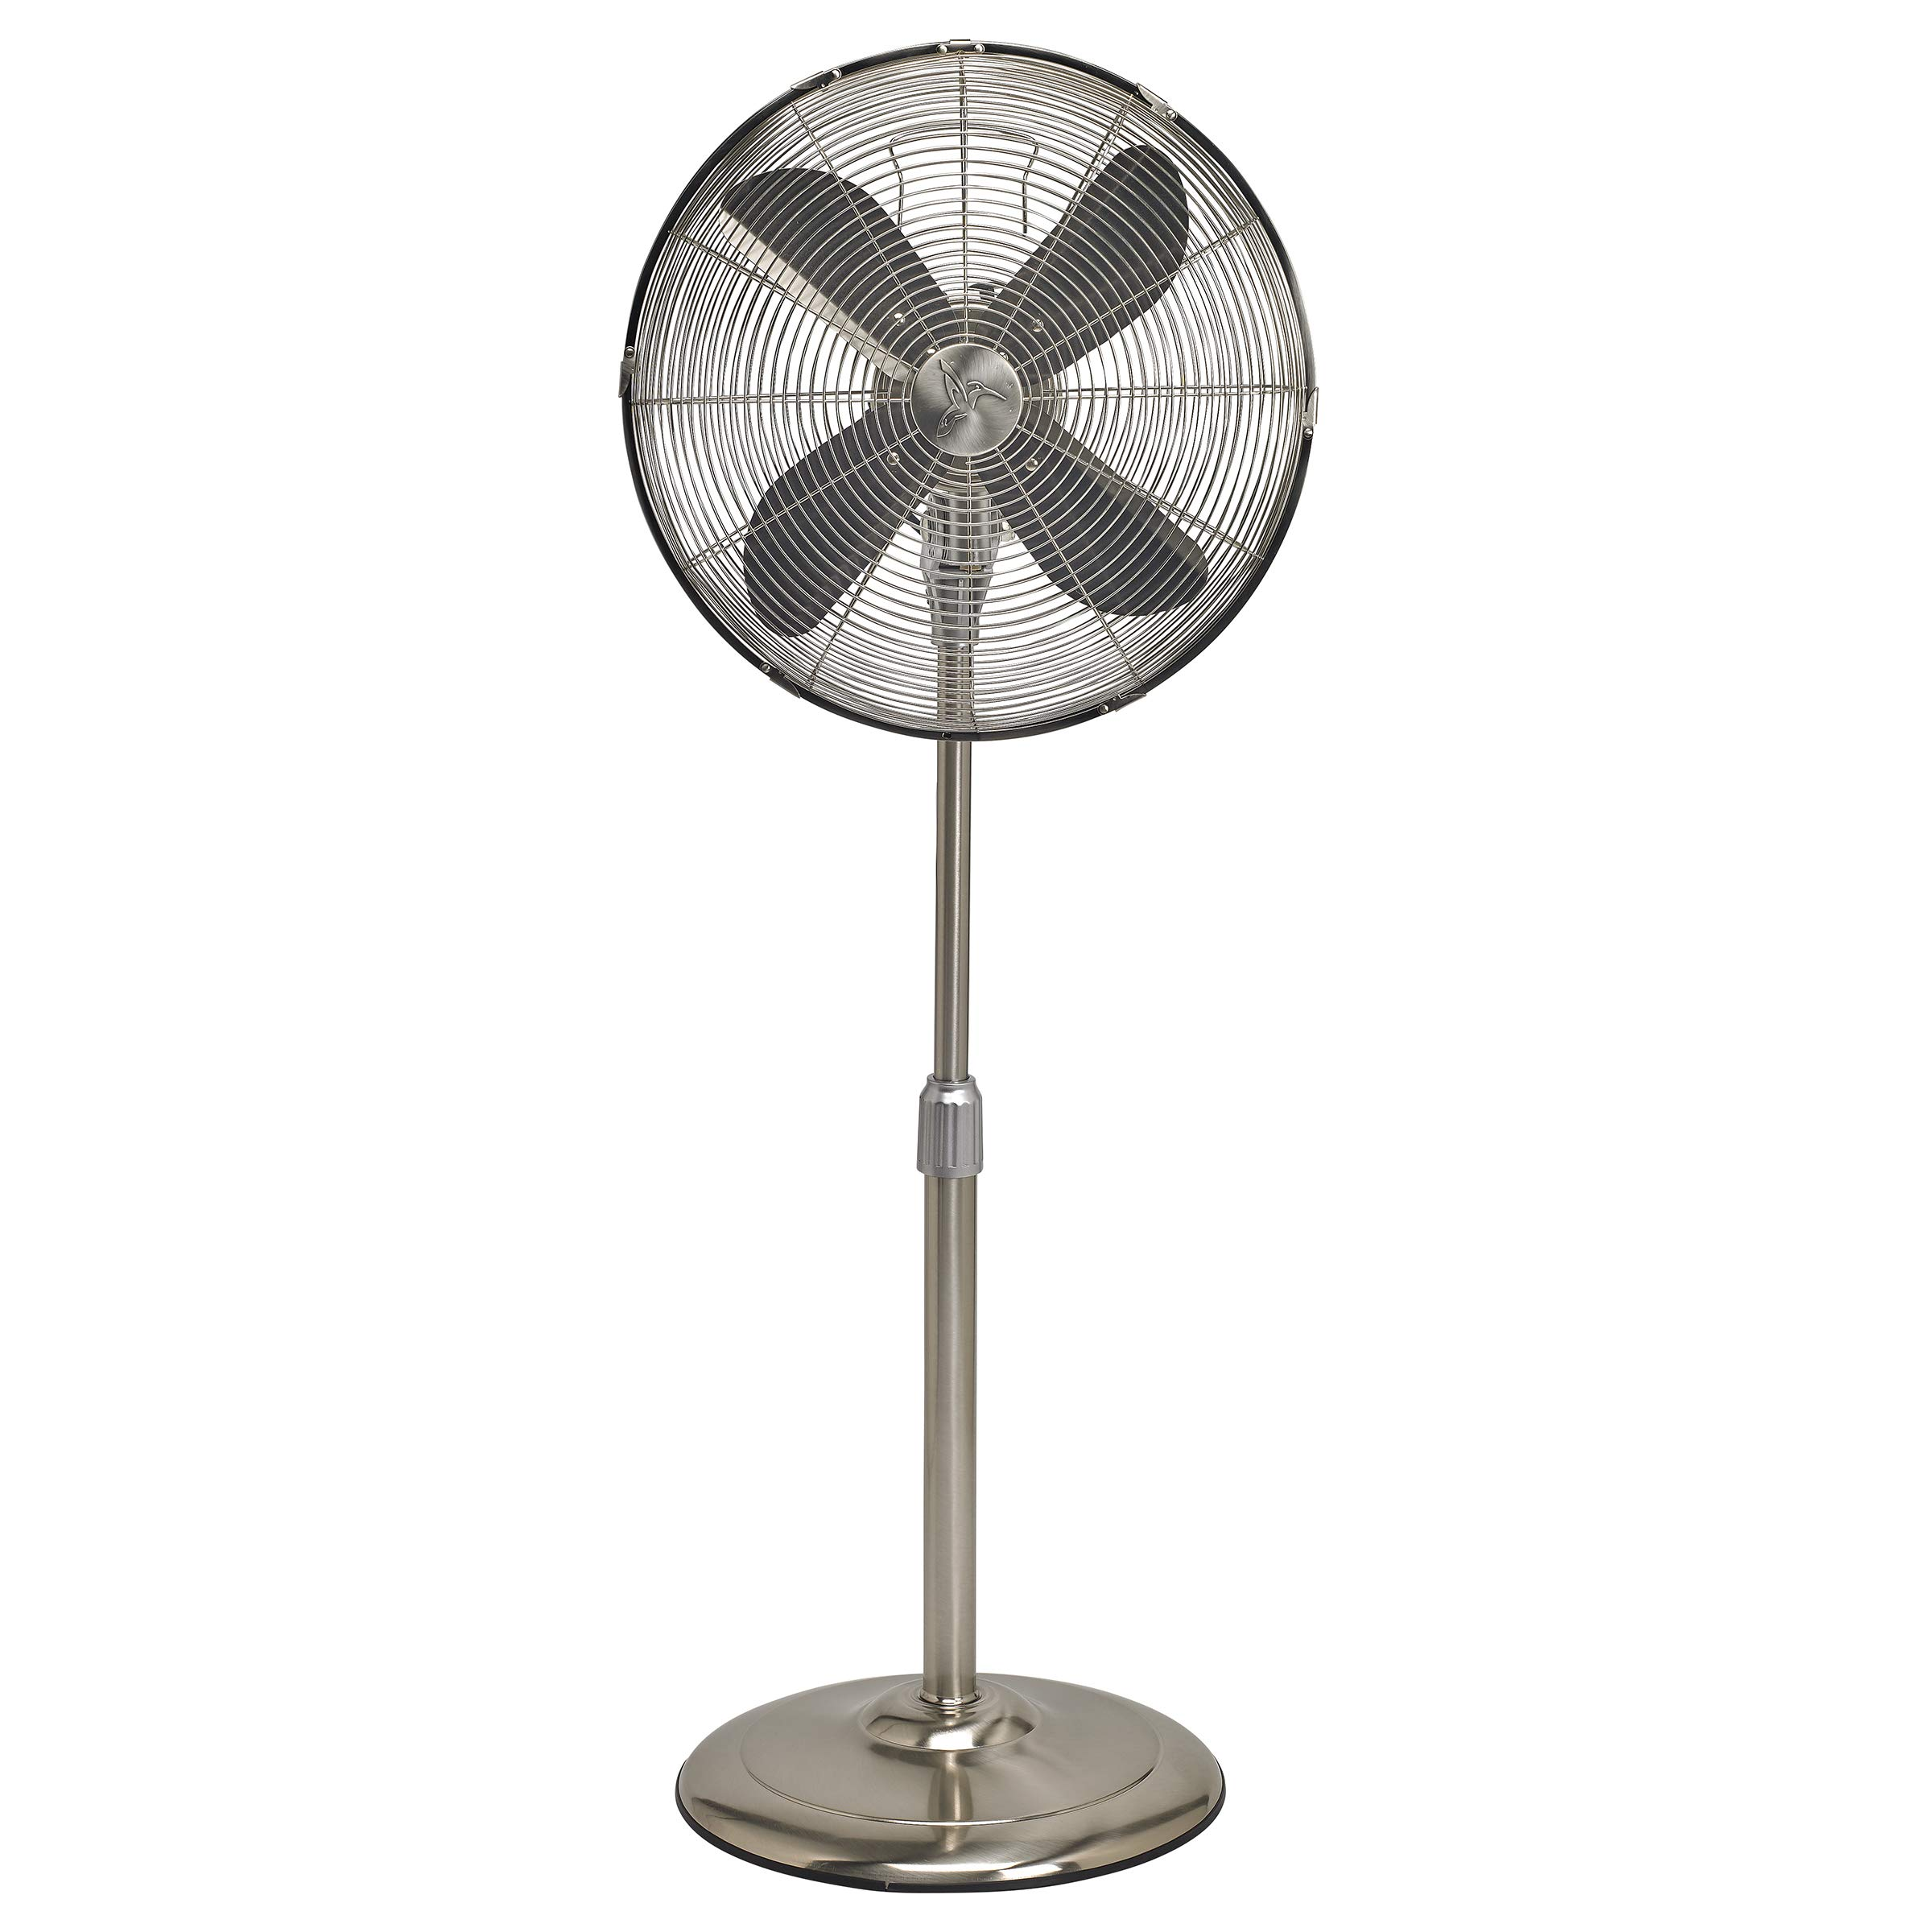 Lasko 37 Oscillating Tower Fan Reviews Check Now Blog